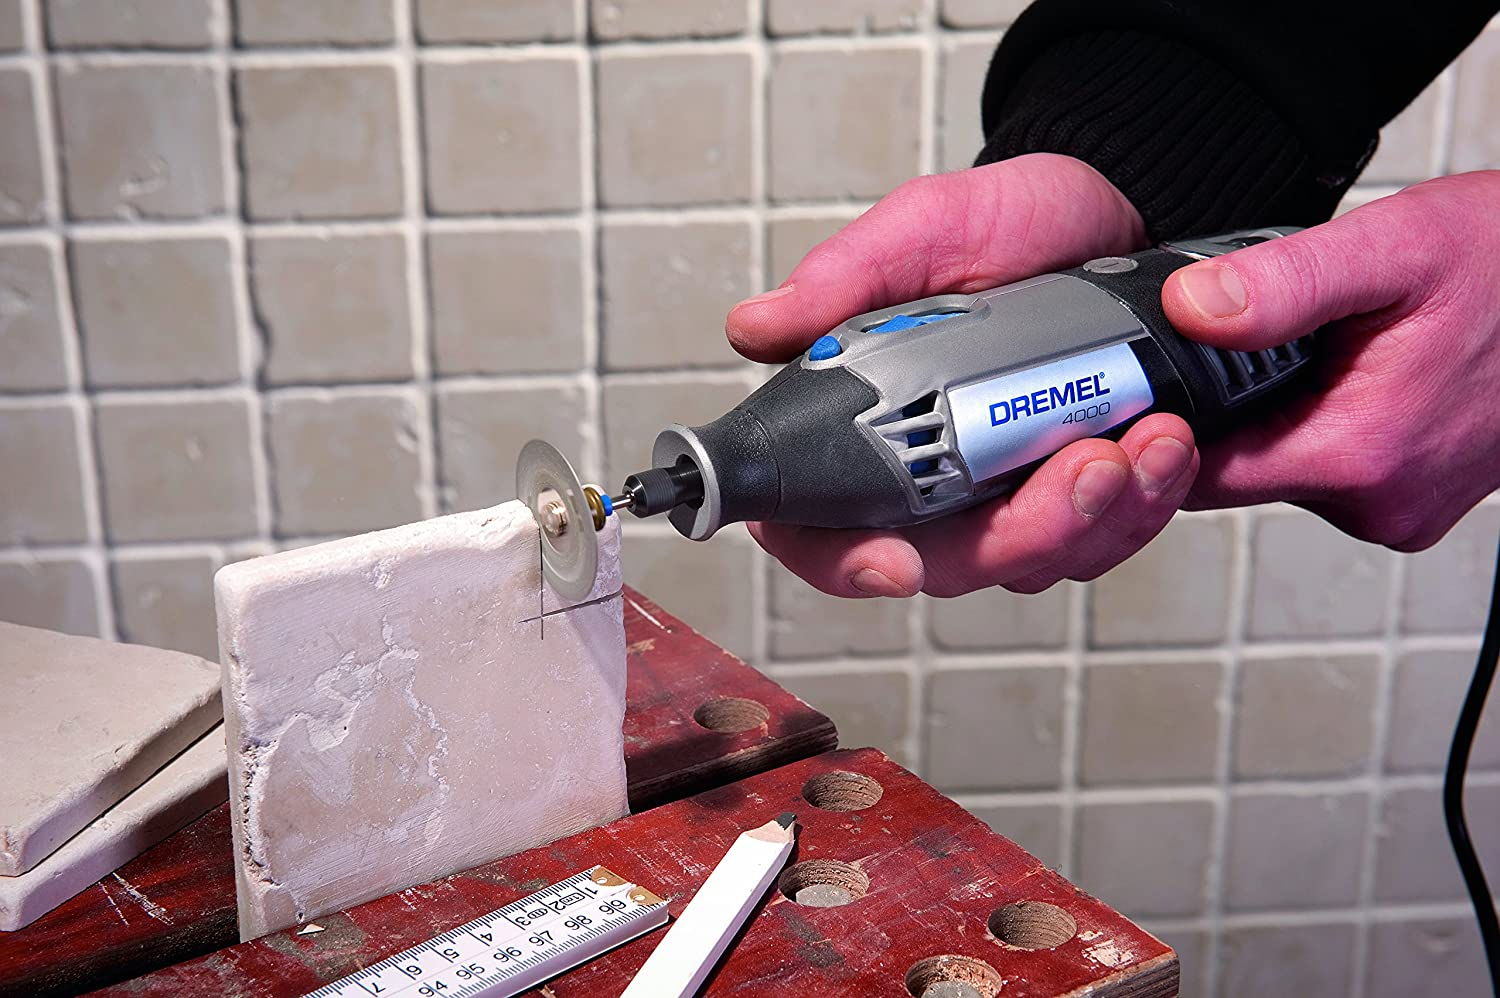 Dremel 4000-6//50 120-Volt Variable-Speed Rotary Tool with 50 Accessories